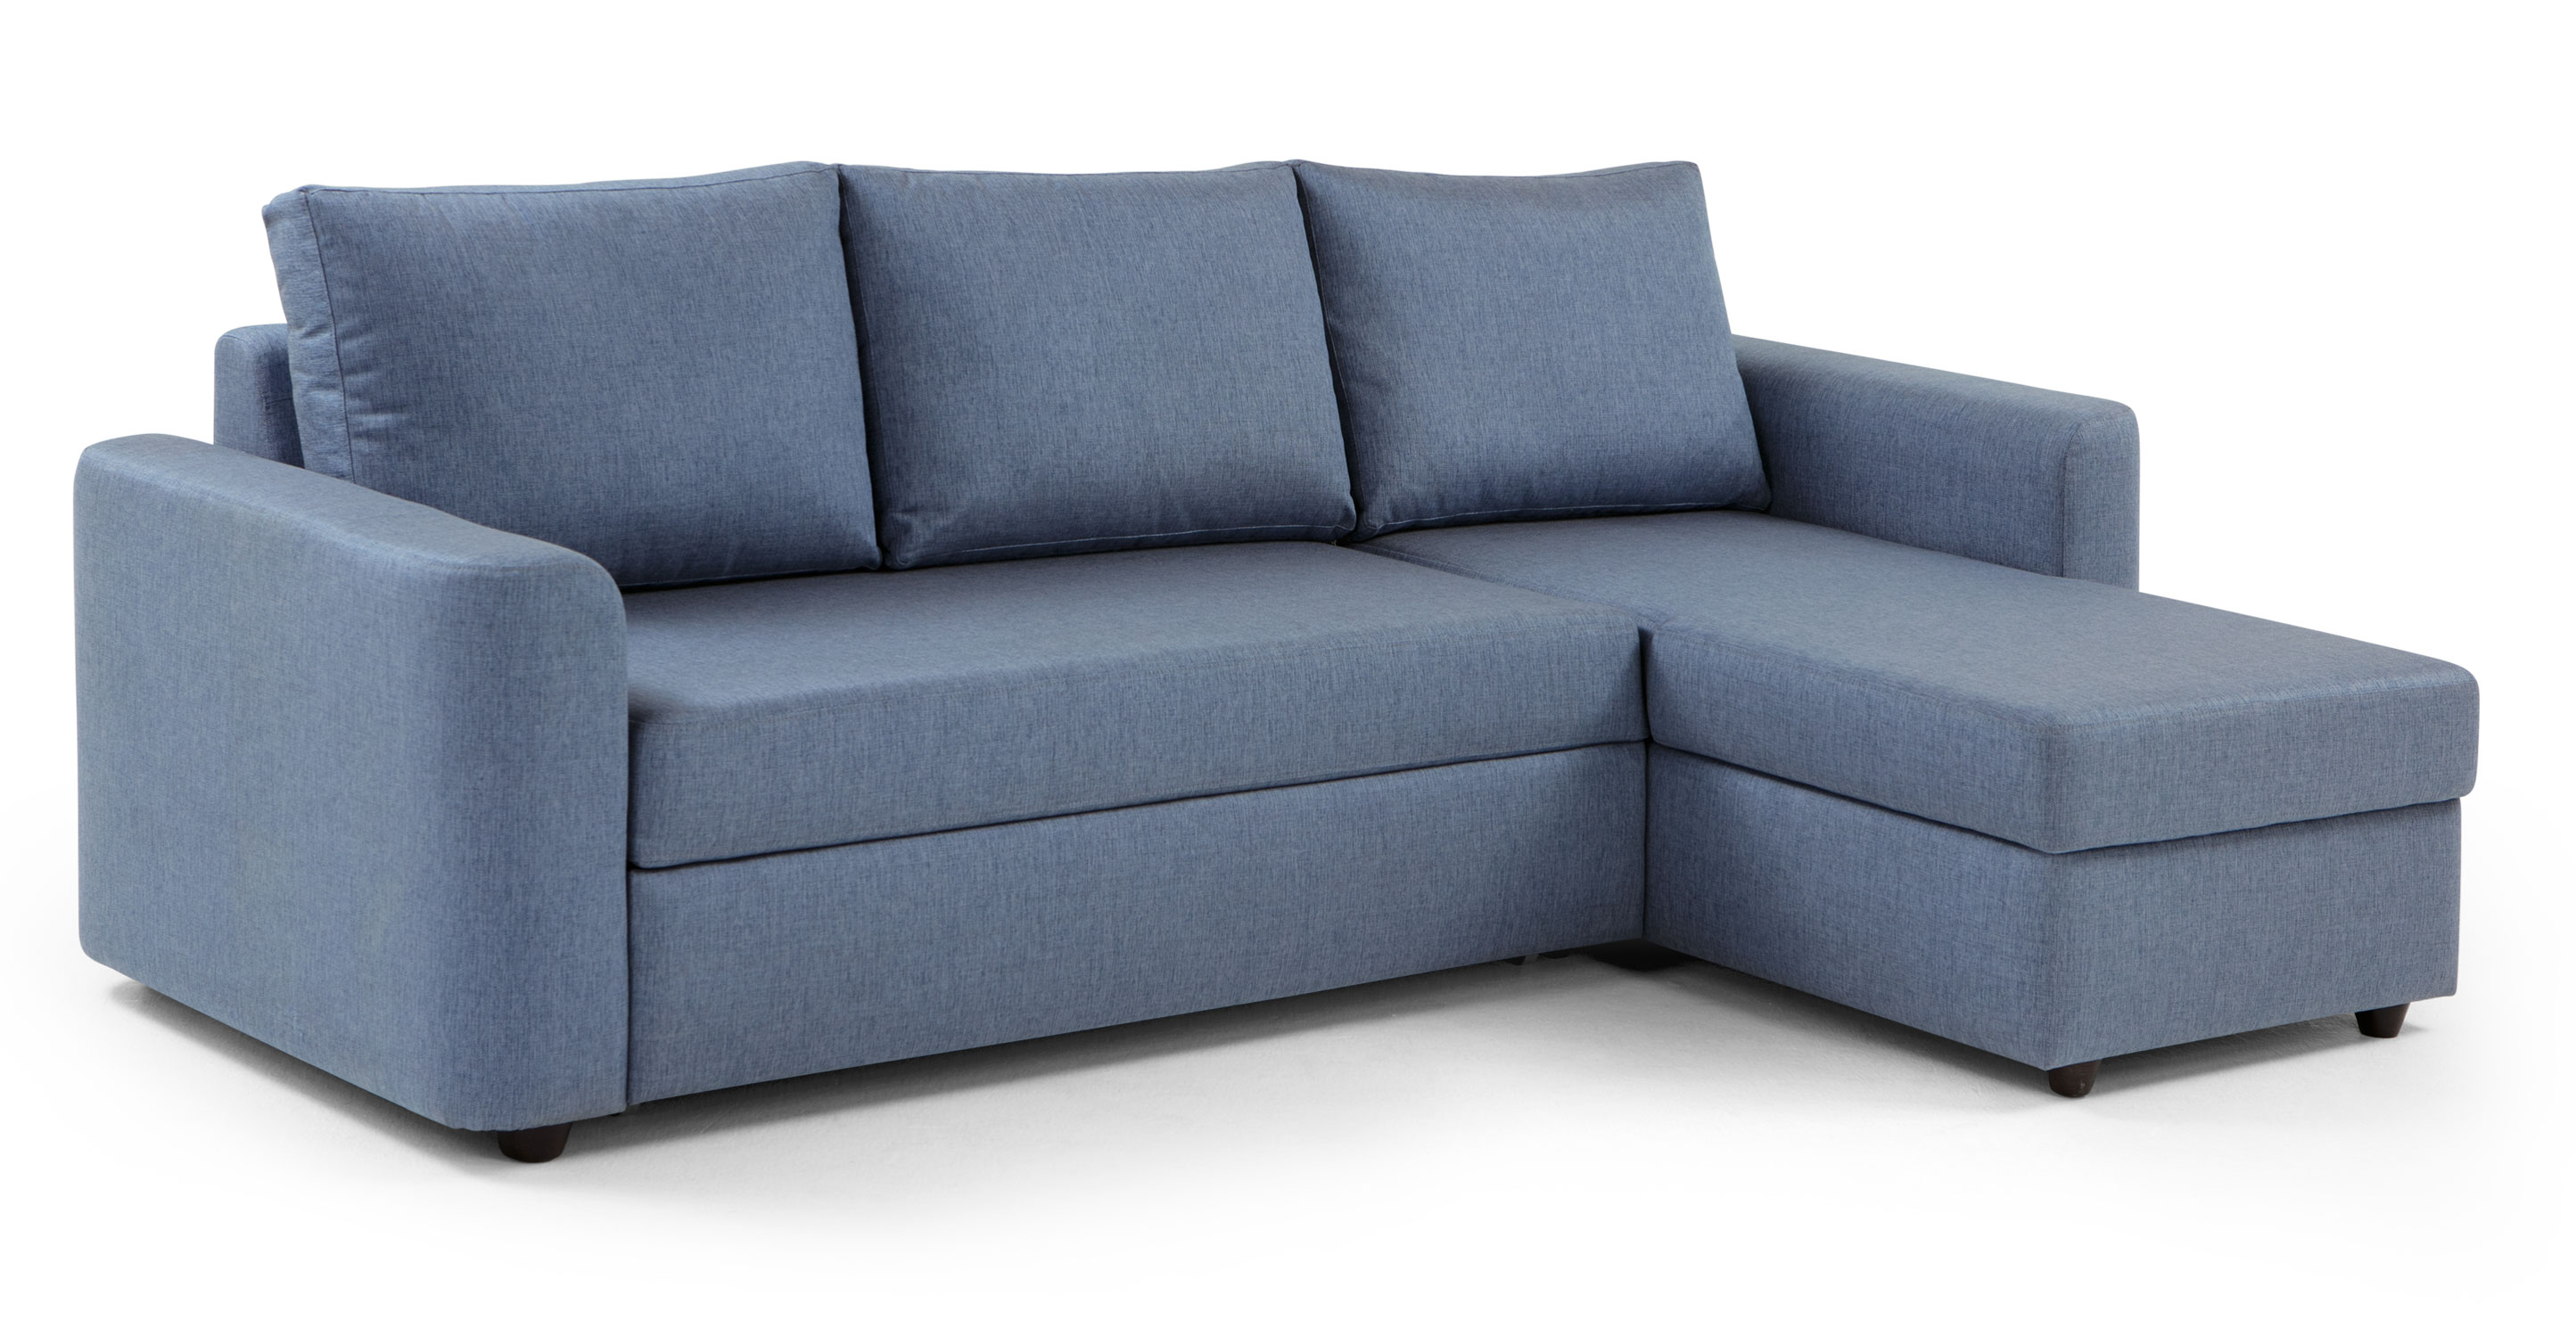 Albie Right Hand Facing Corner Storage Sofa Bed Denim Haze: denim loveseat